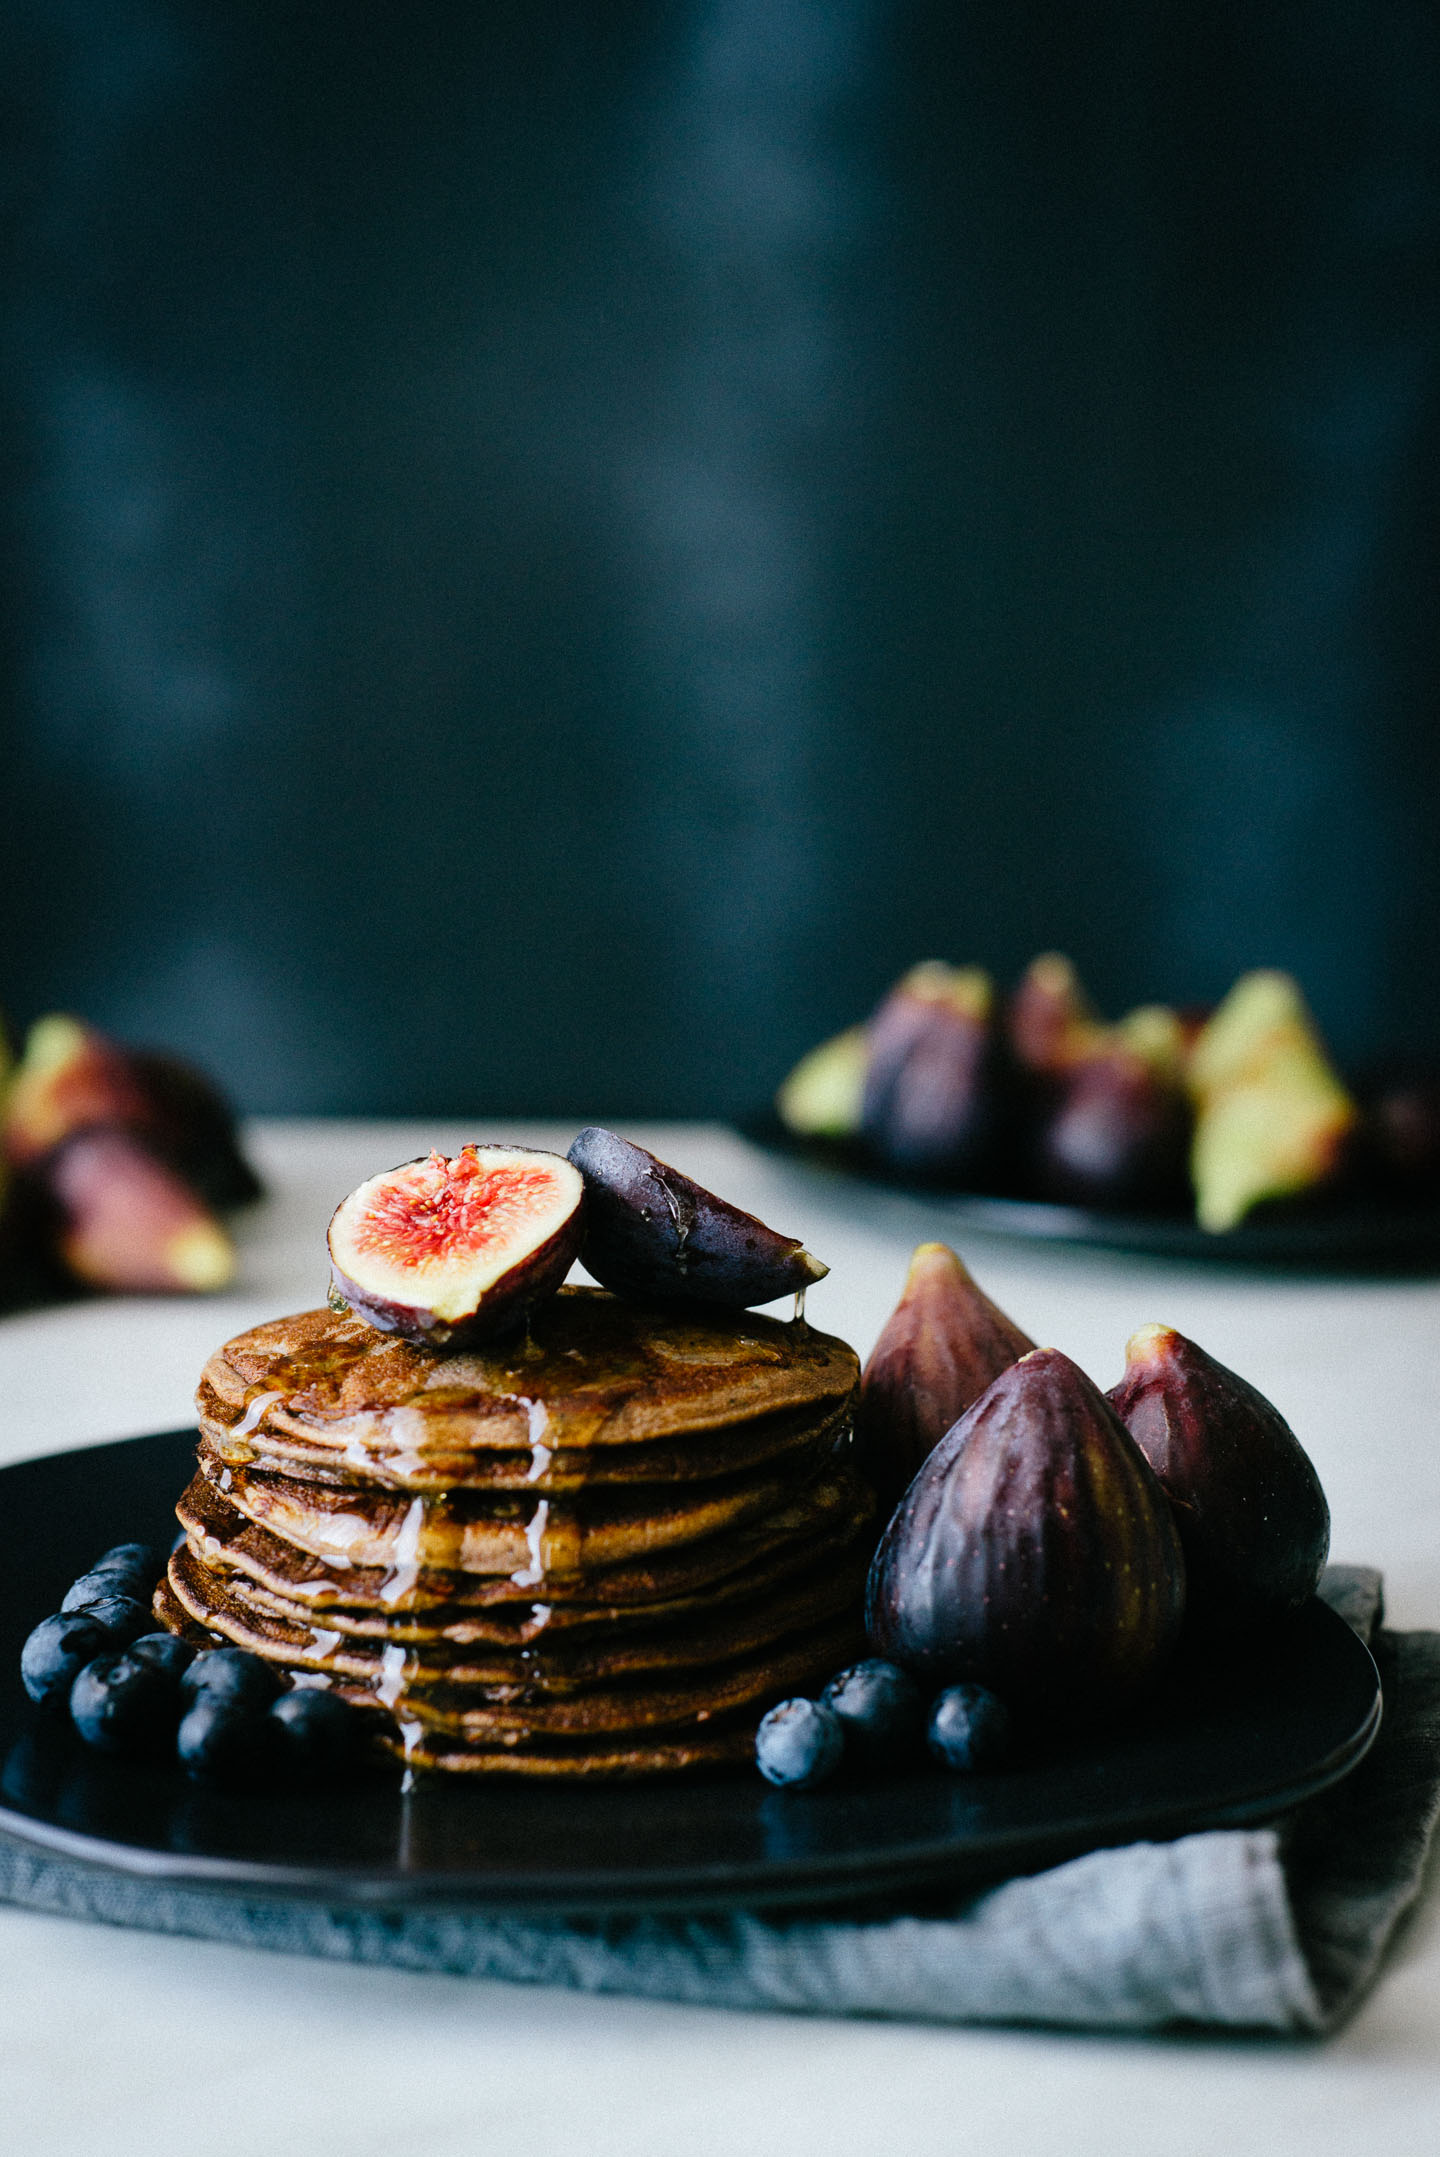 Chocolate_Banana_Pancakes_Christina_Soong-1